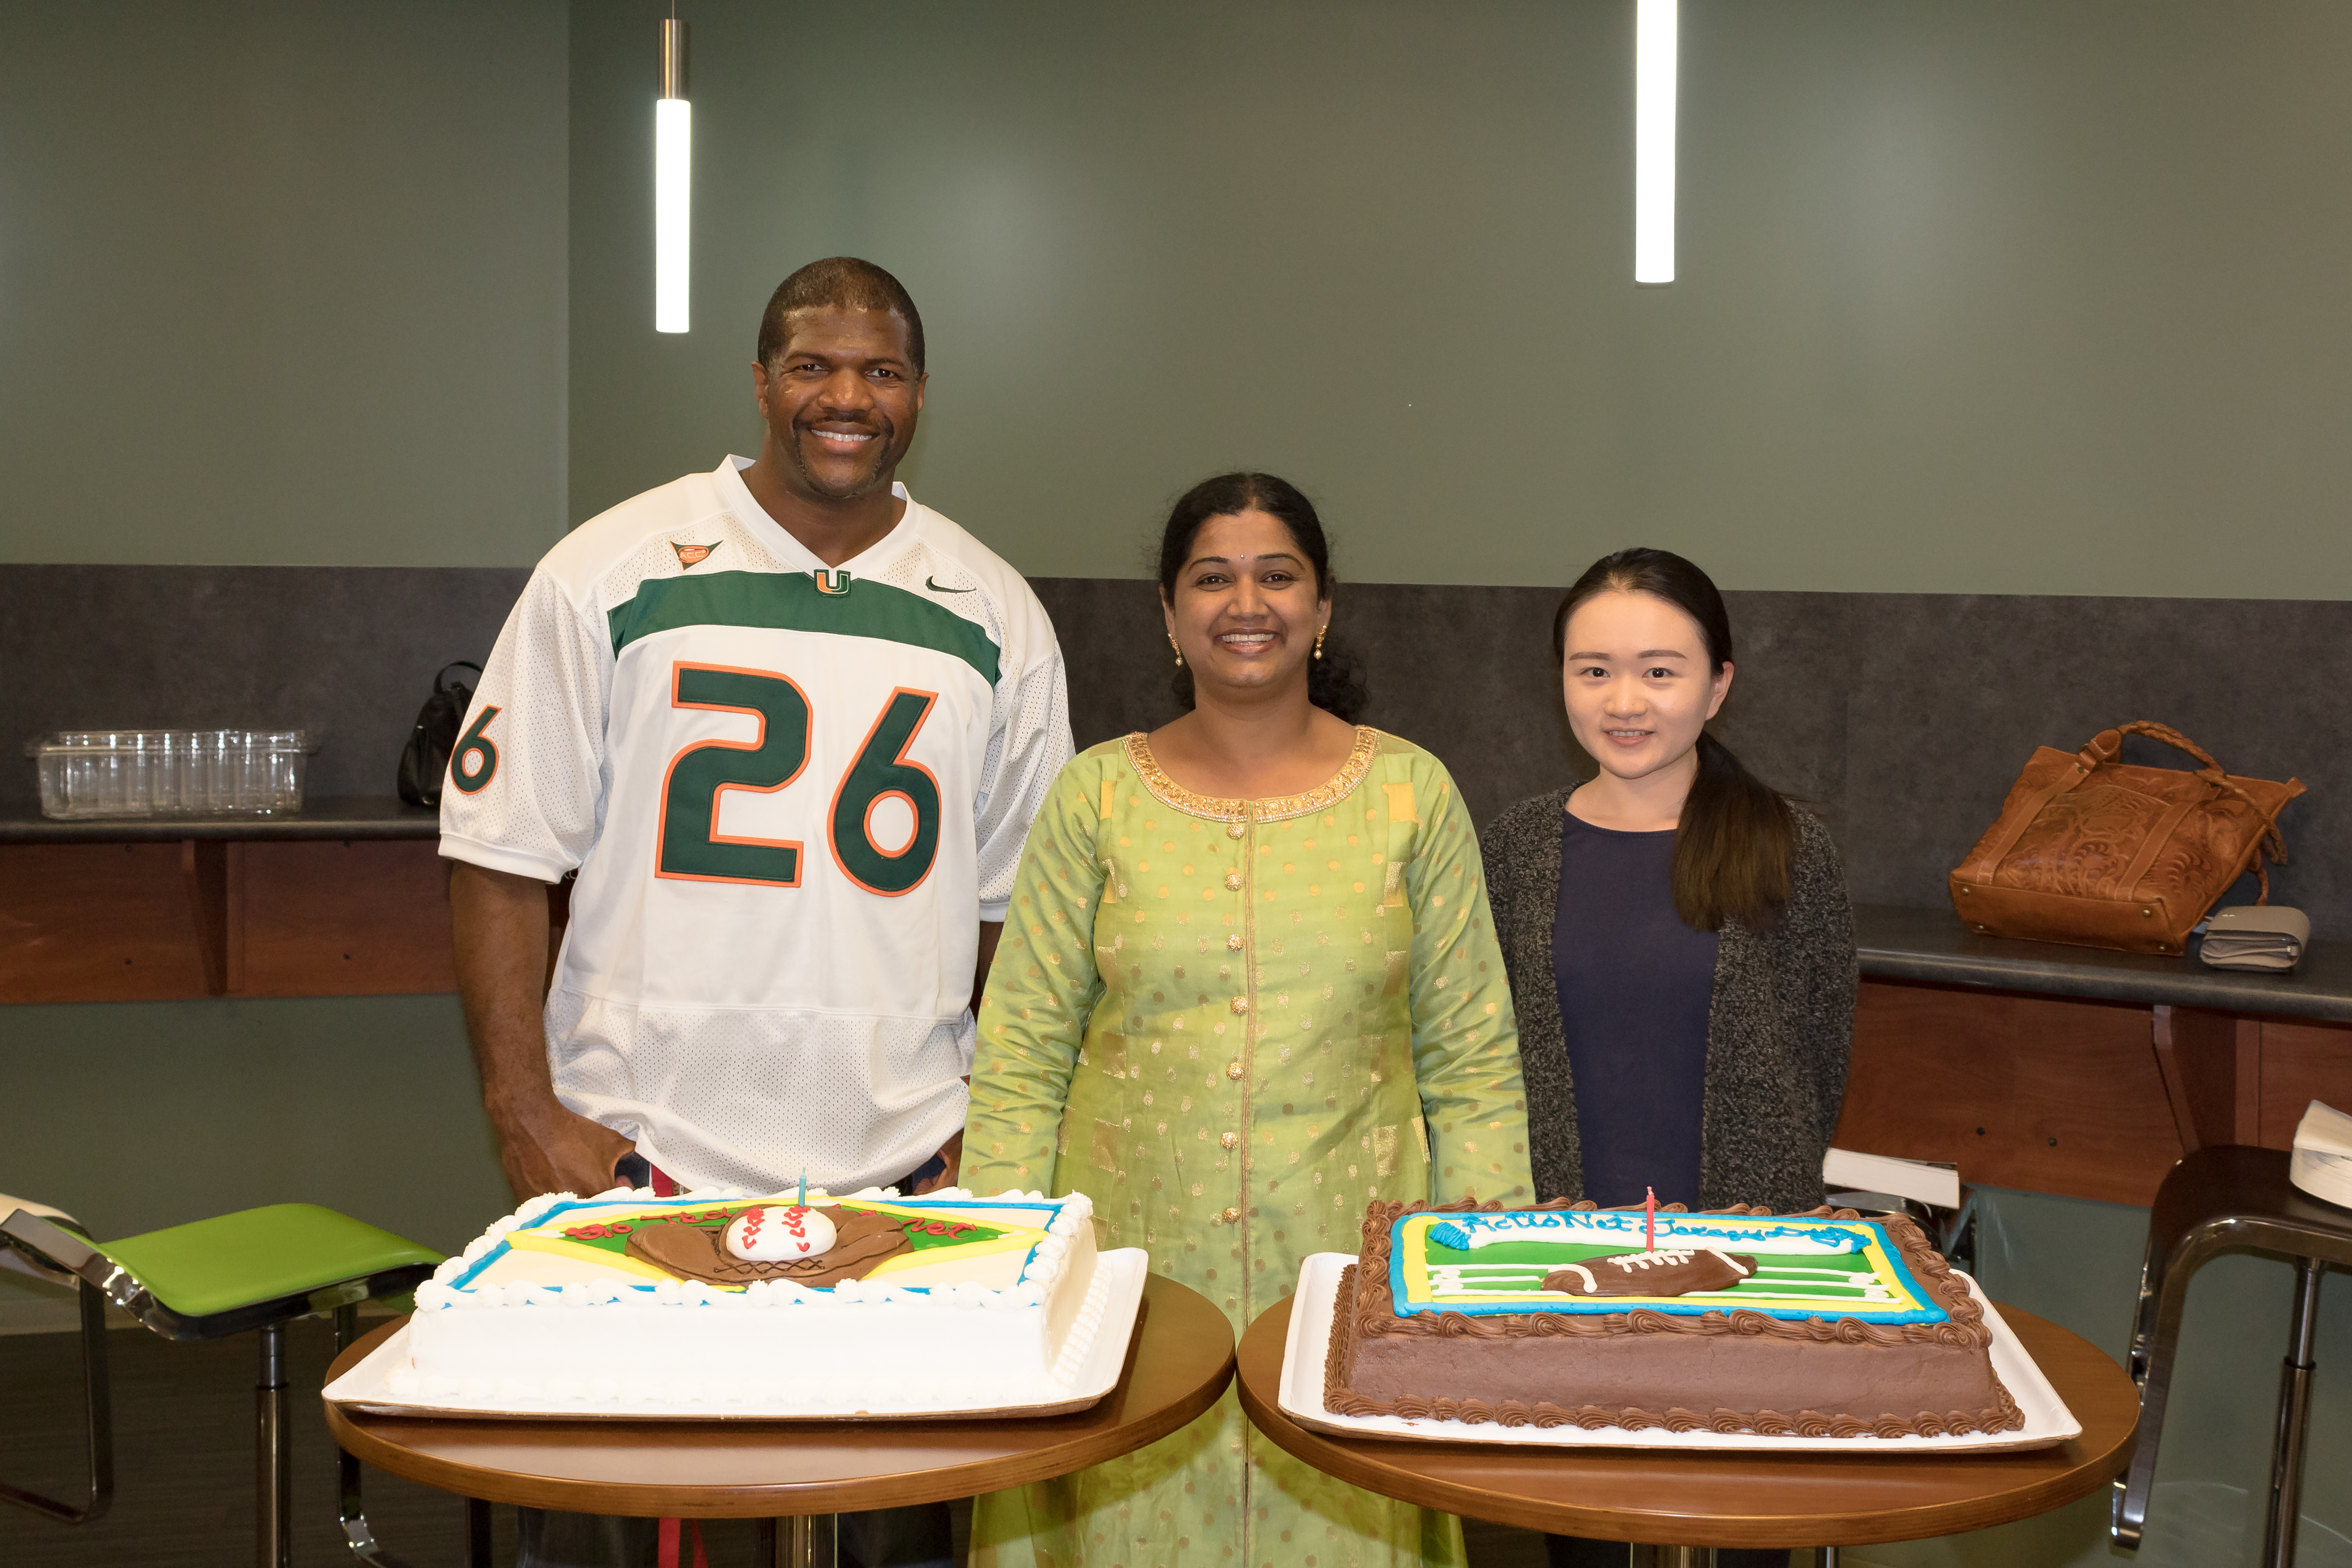 ActioNeters with September birthdays pose for a photo with the sports-themed cakes